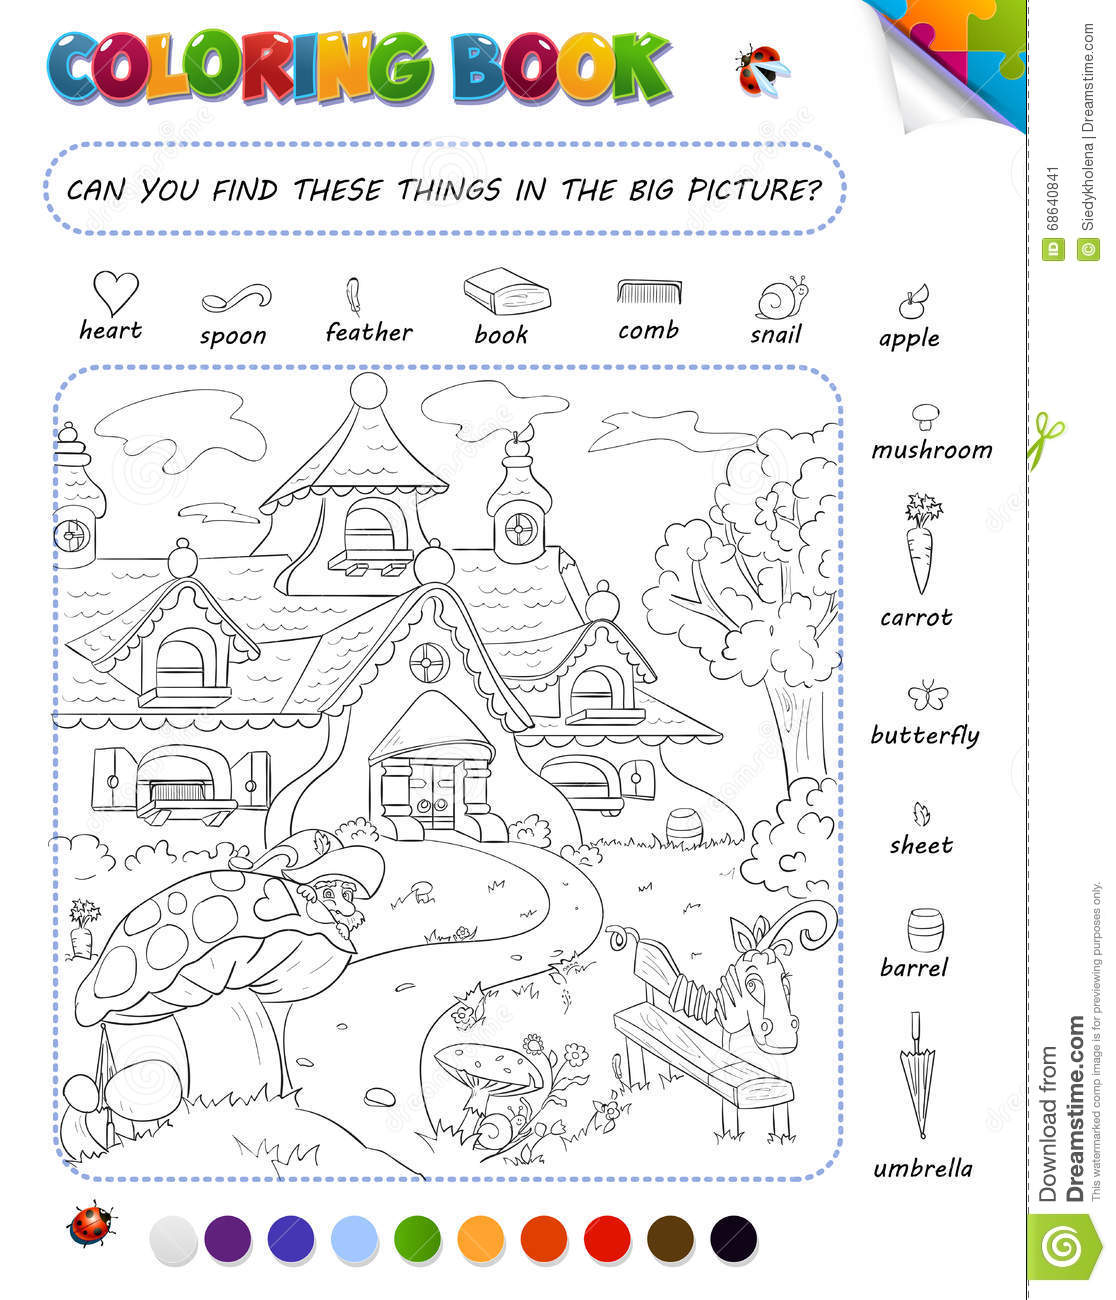 Coloring Book Game For Kids Stock Illustration